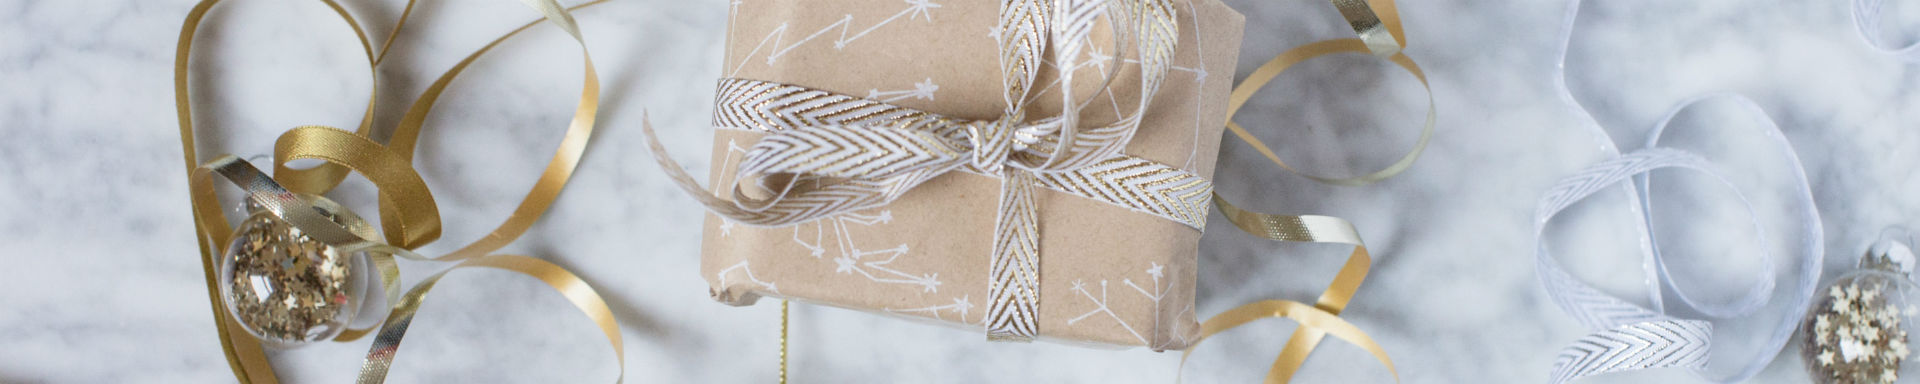 theannaedit-last-minyte-gift-wrapping-present-ideas-december-2016-2